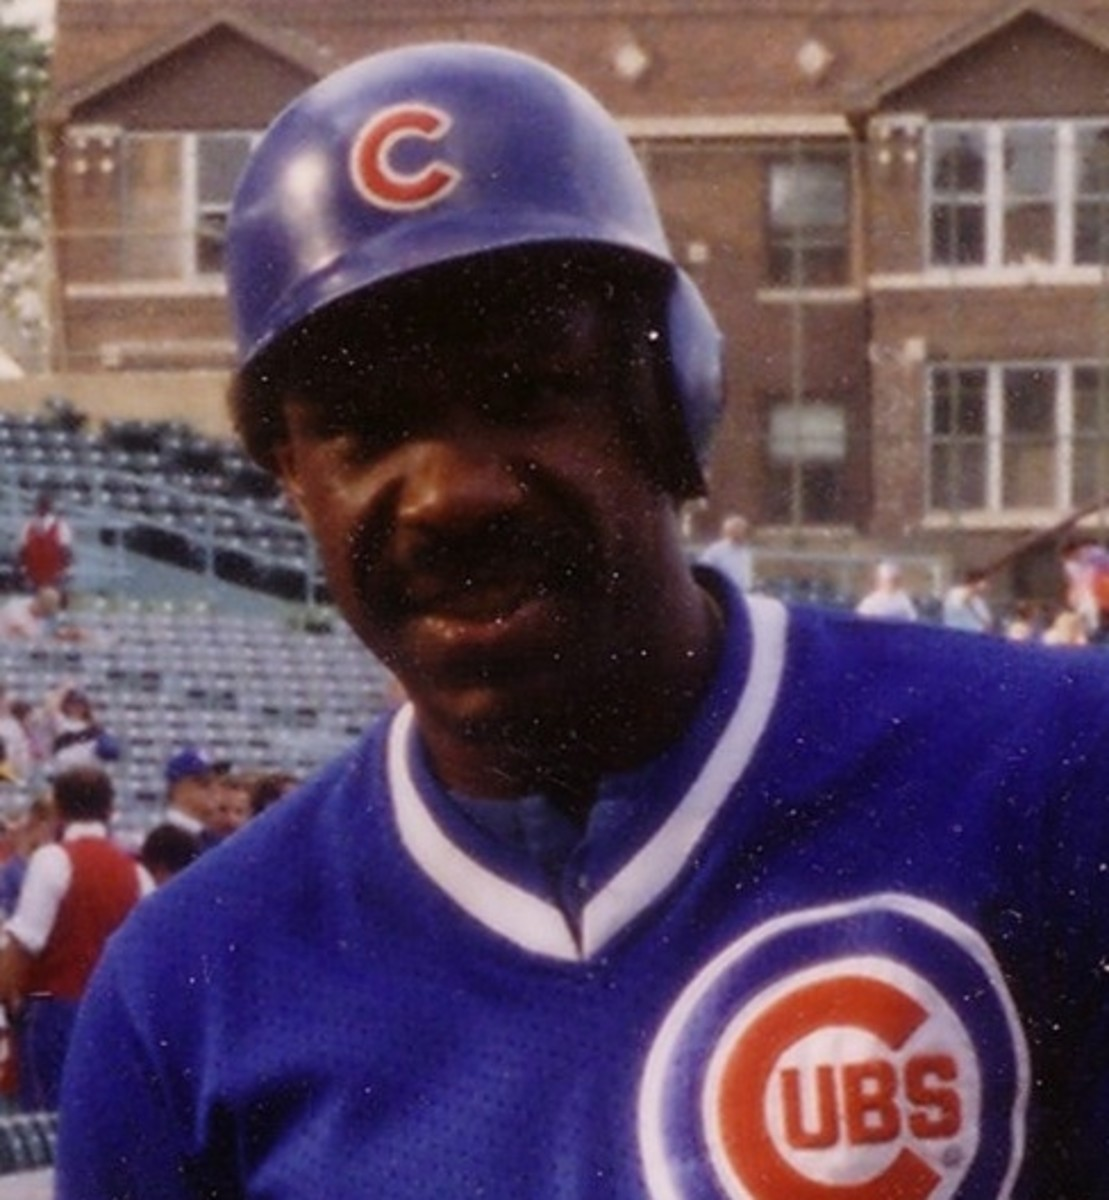 Andre Dawson was the National League MVP in 1987, and his 49 home runs that season are tied for the most hit in a season during the 1980s.